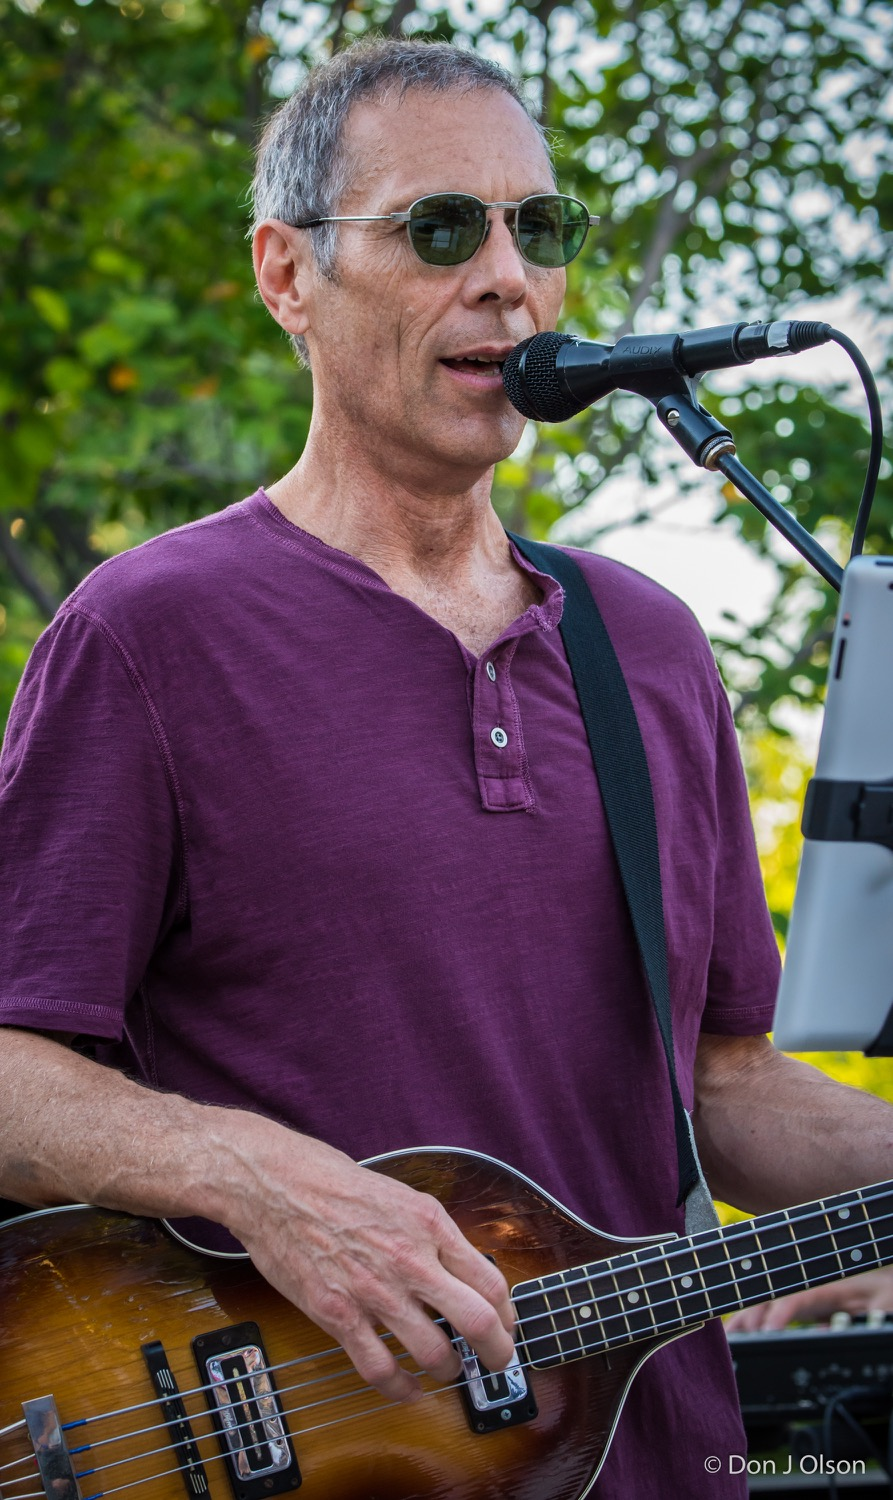 Gary Lopac / The Veterans' Memorial Wolfe Park Amphitheater / St. Louis Park, Minnesota / August 1st, 2015